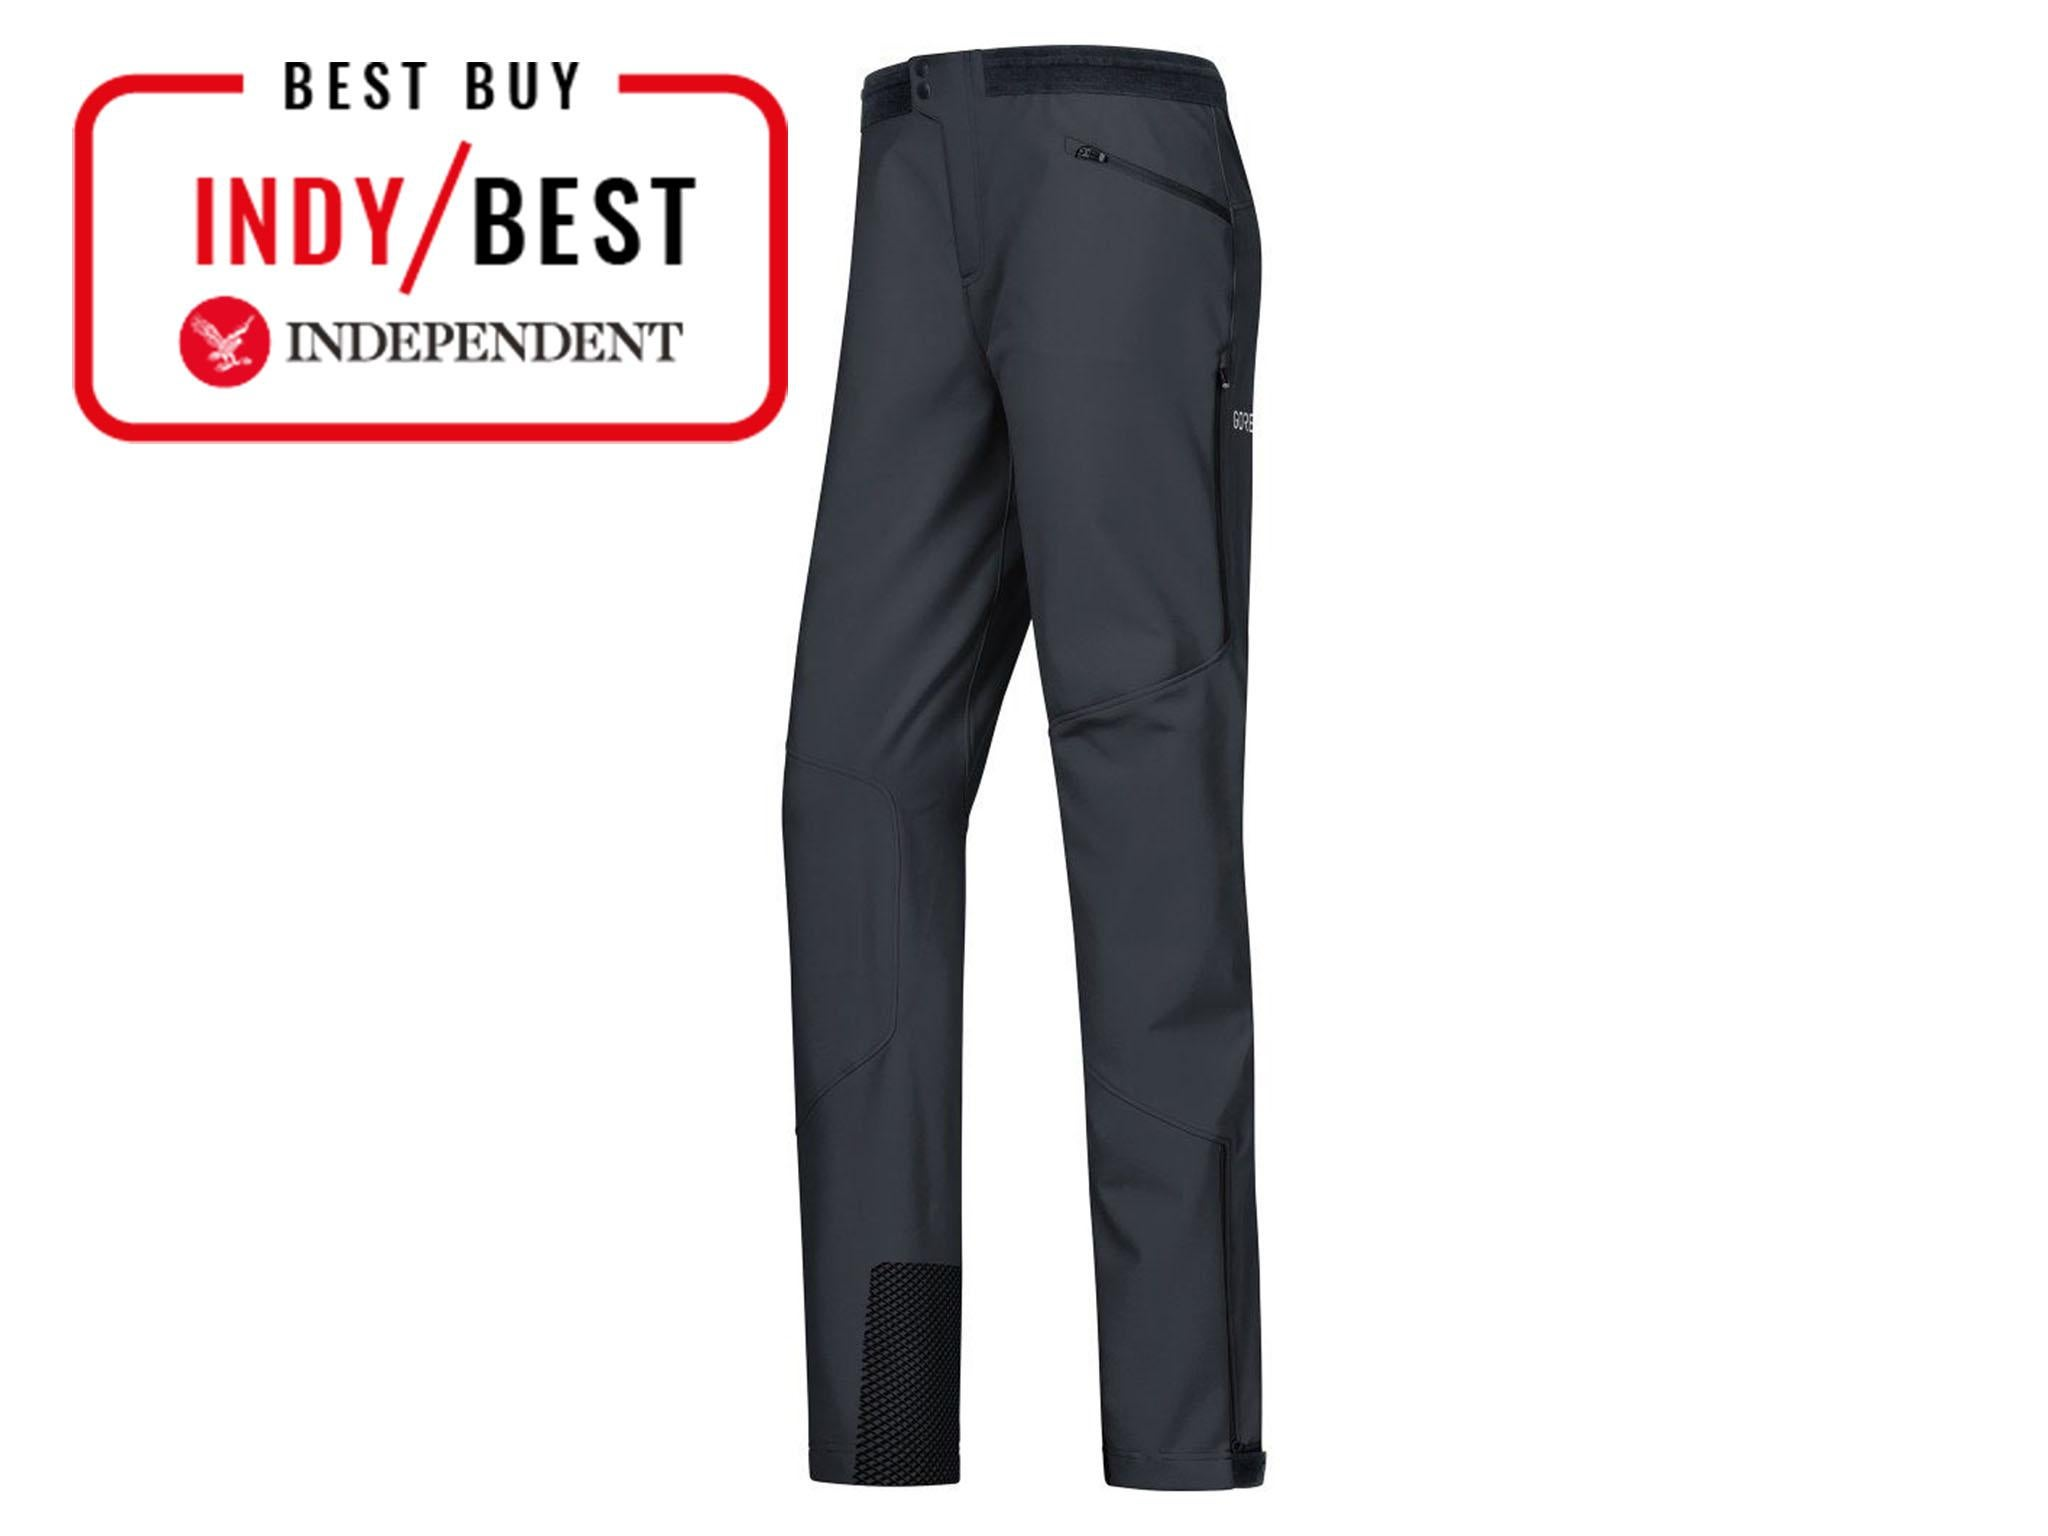 ca445c0fdc1c 10 best walking trousers | The Independent